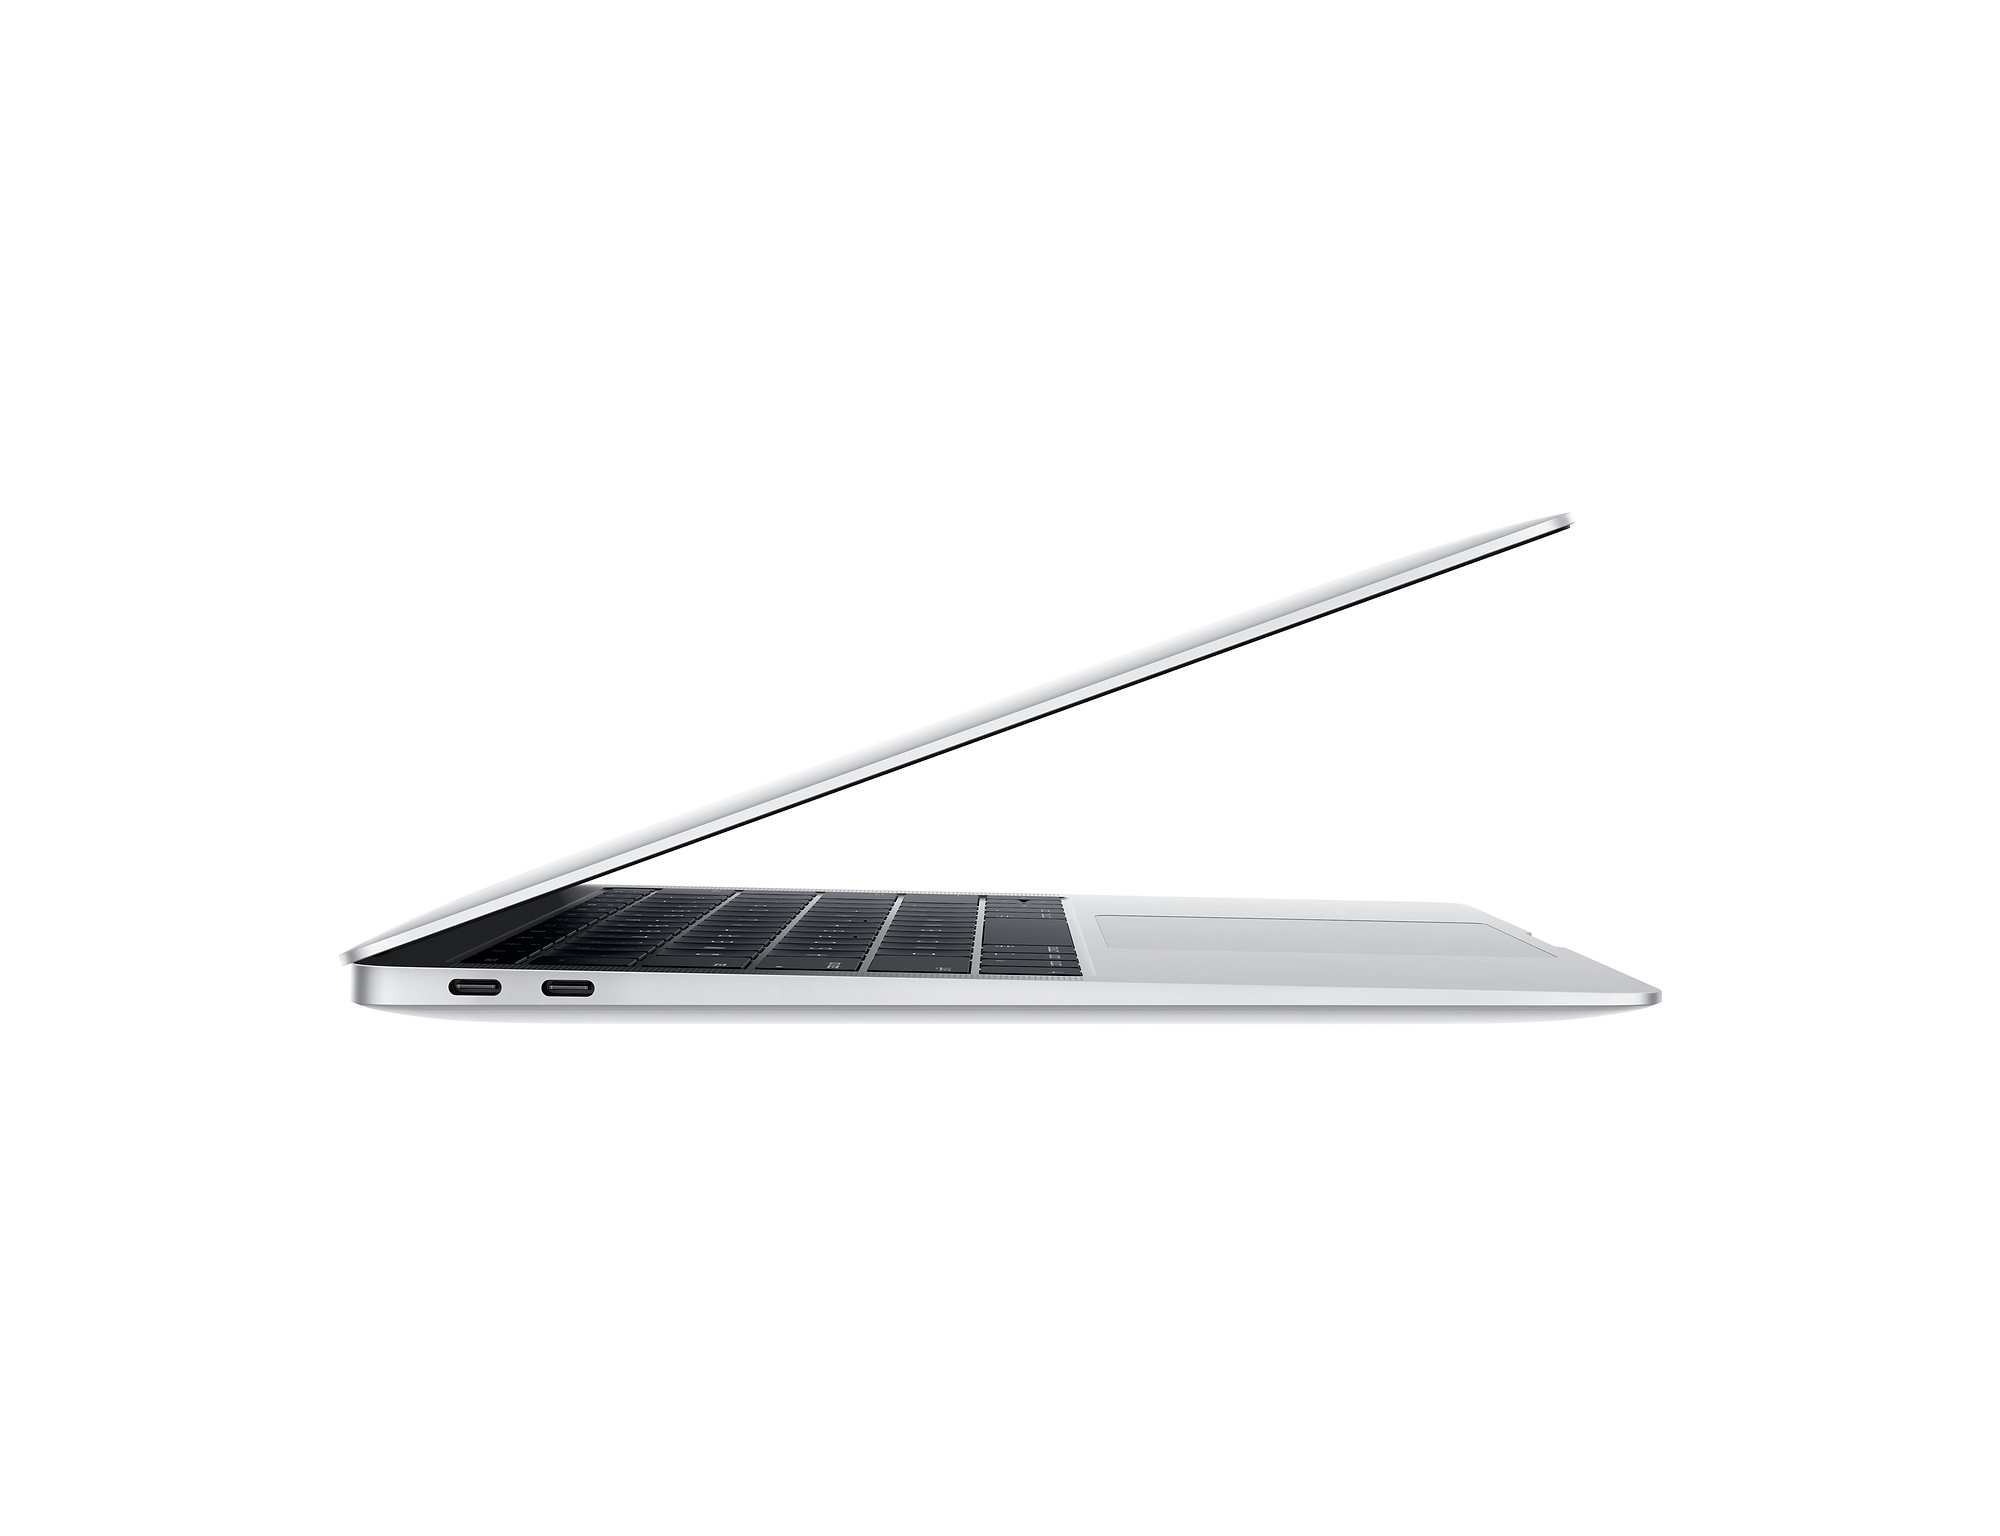 MacBook Air (1.6GHz Dual-Core Processor, 256GB Storage